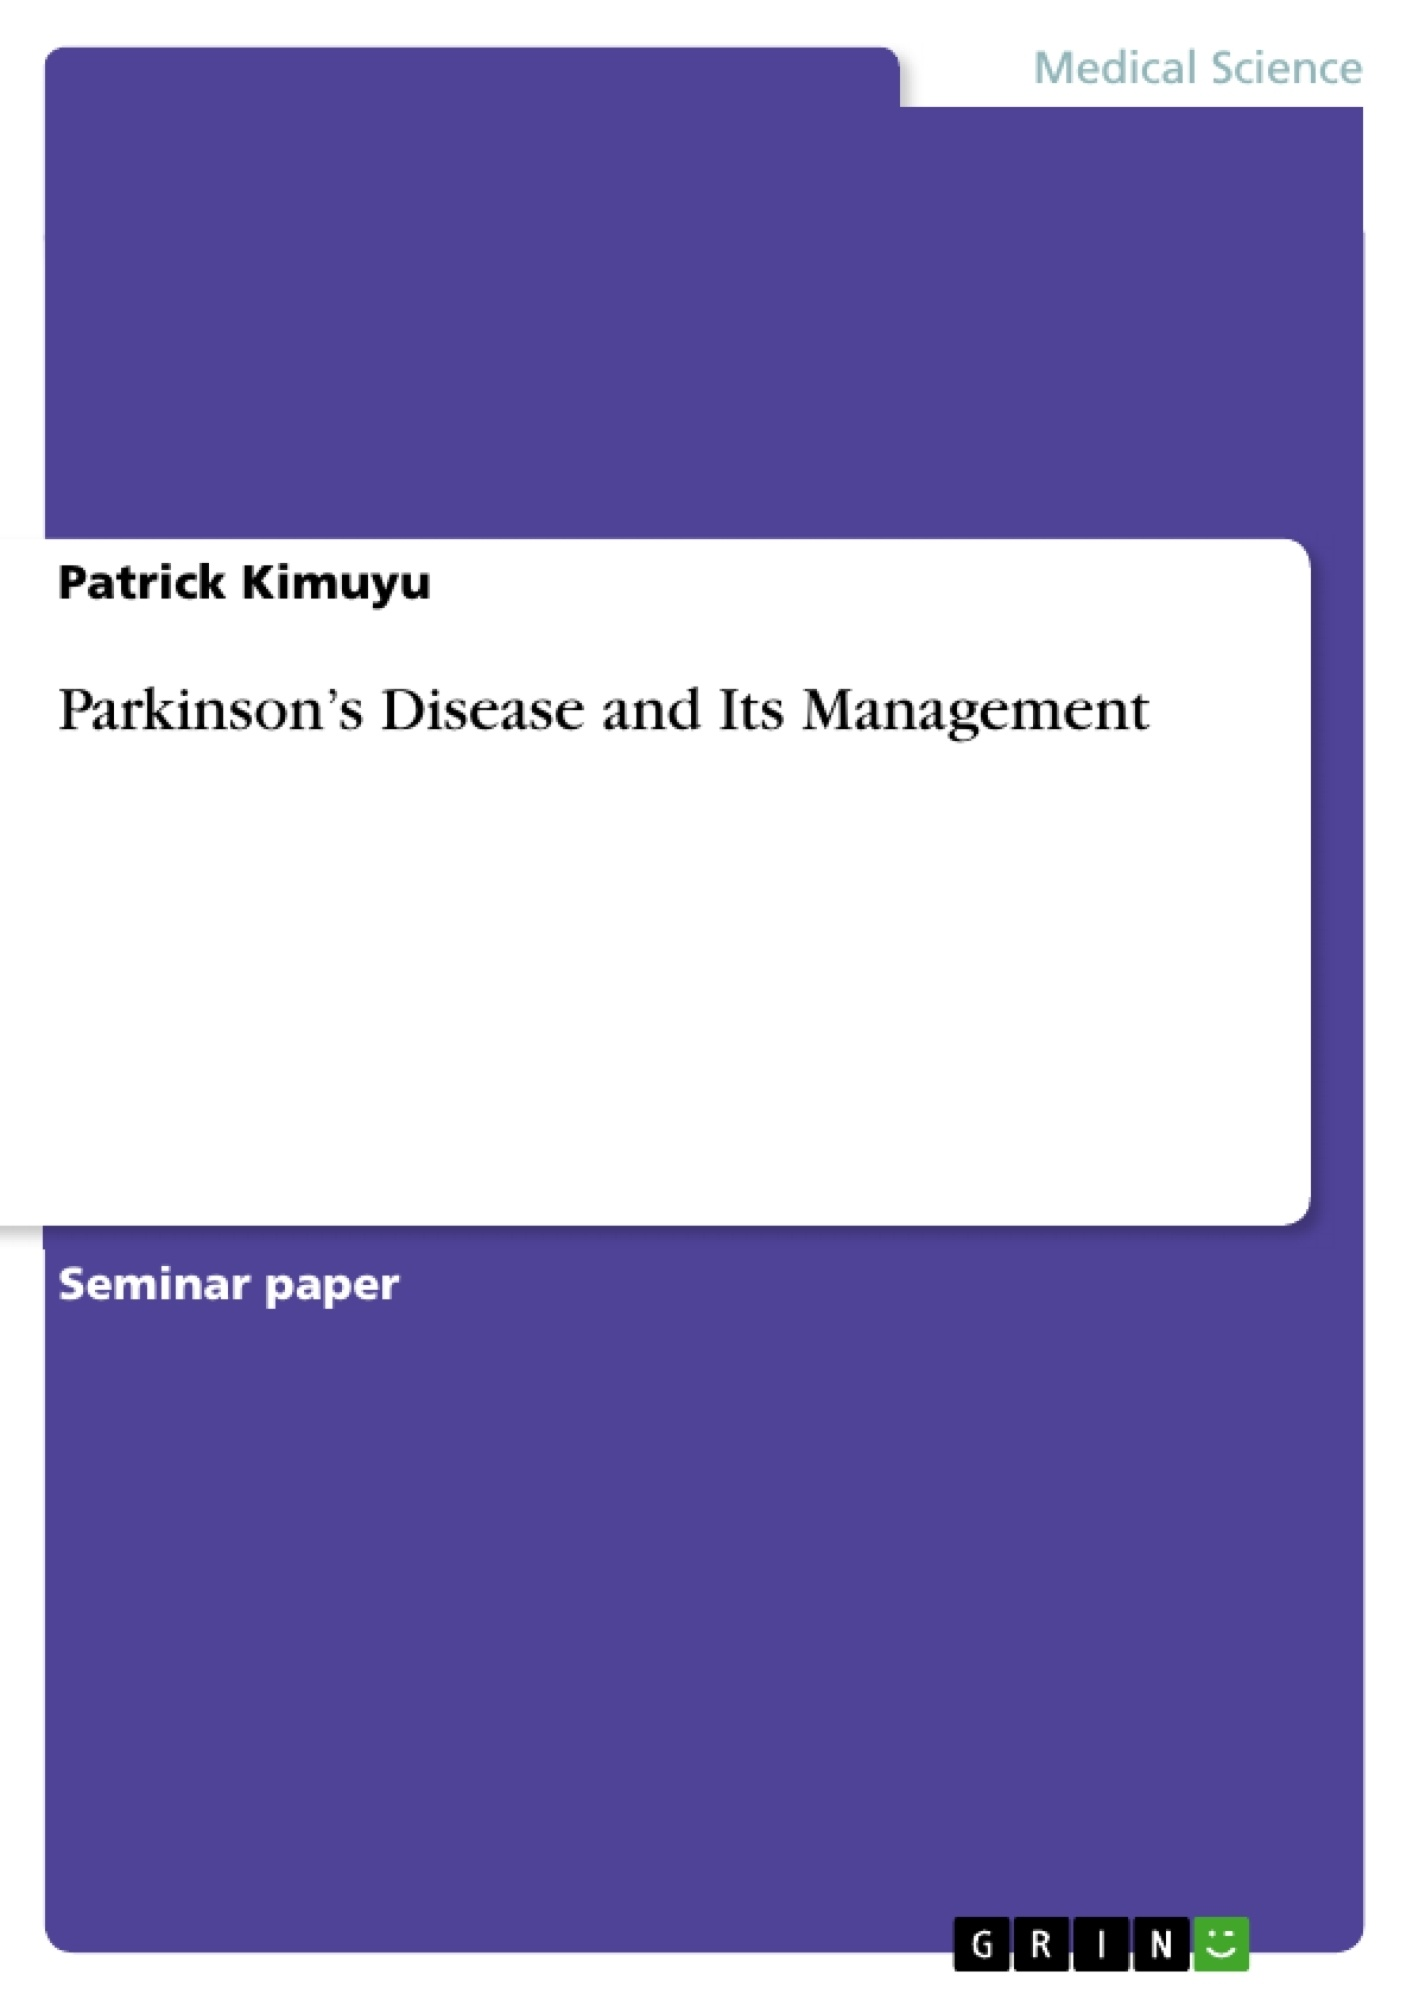 Title: Parkinson's Disease and Its Management